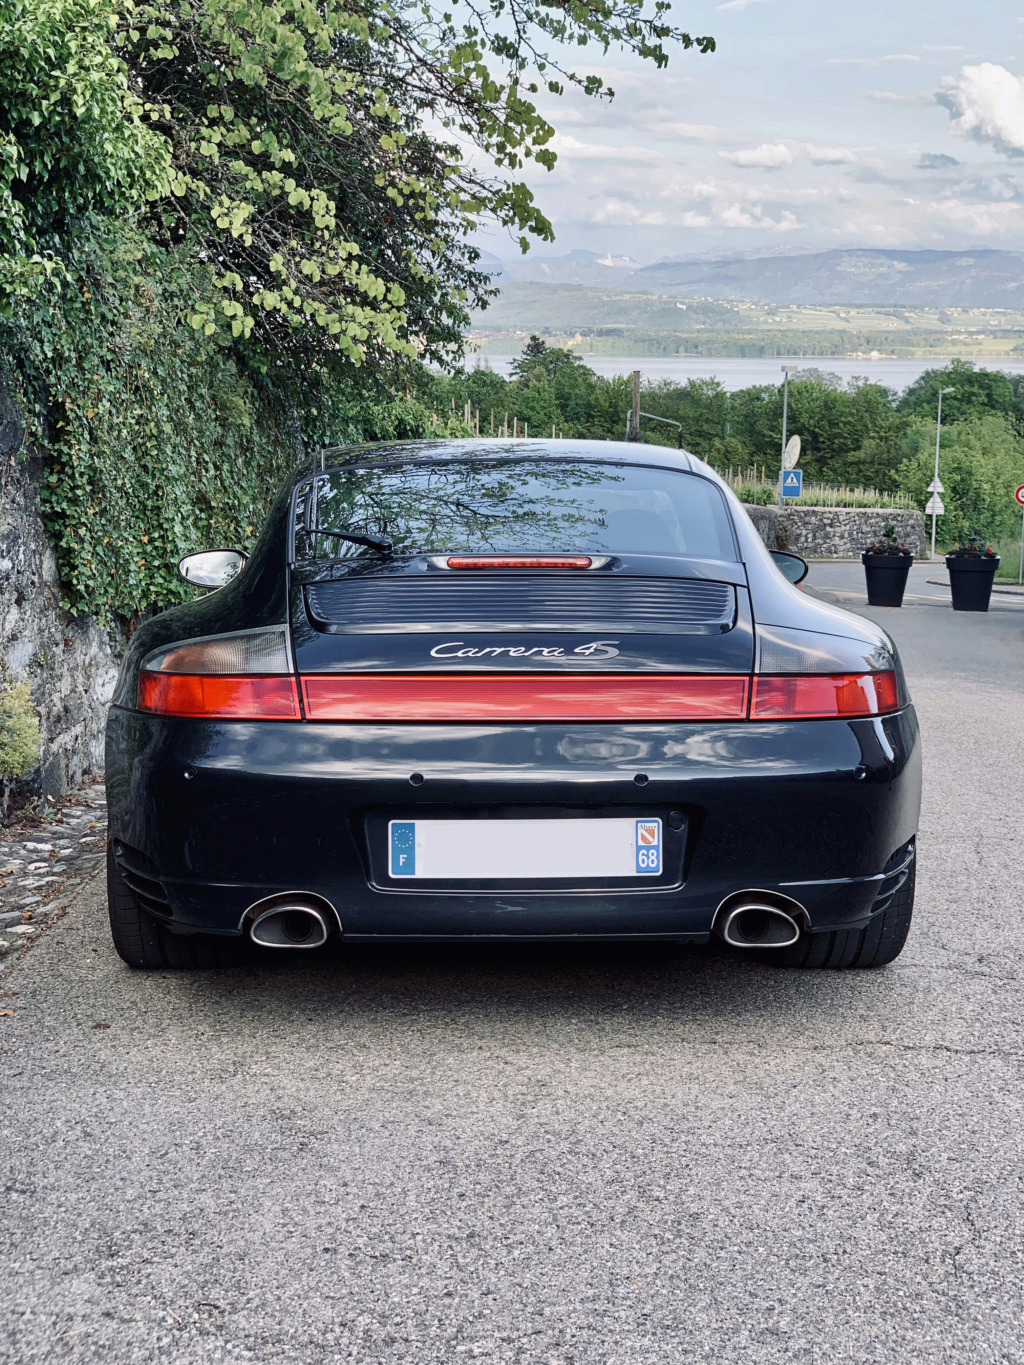 Porsche 996 4S Gris atlas (origine France) Img_7712